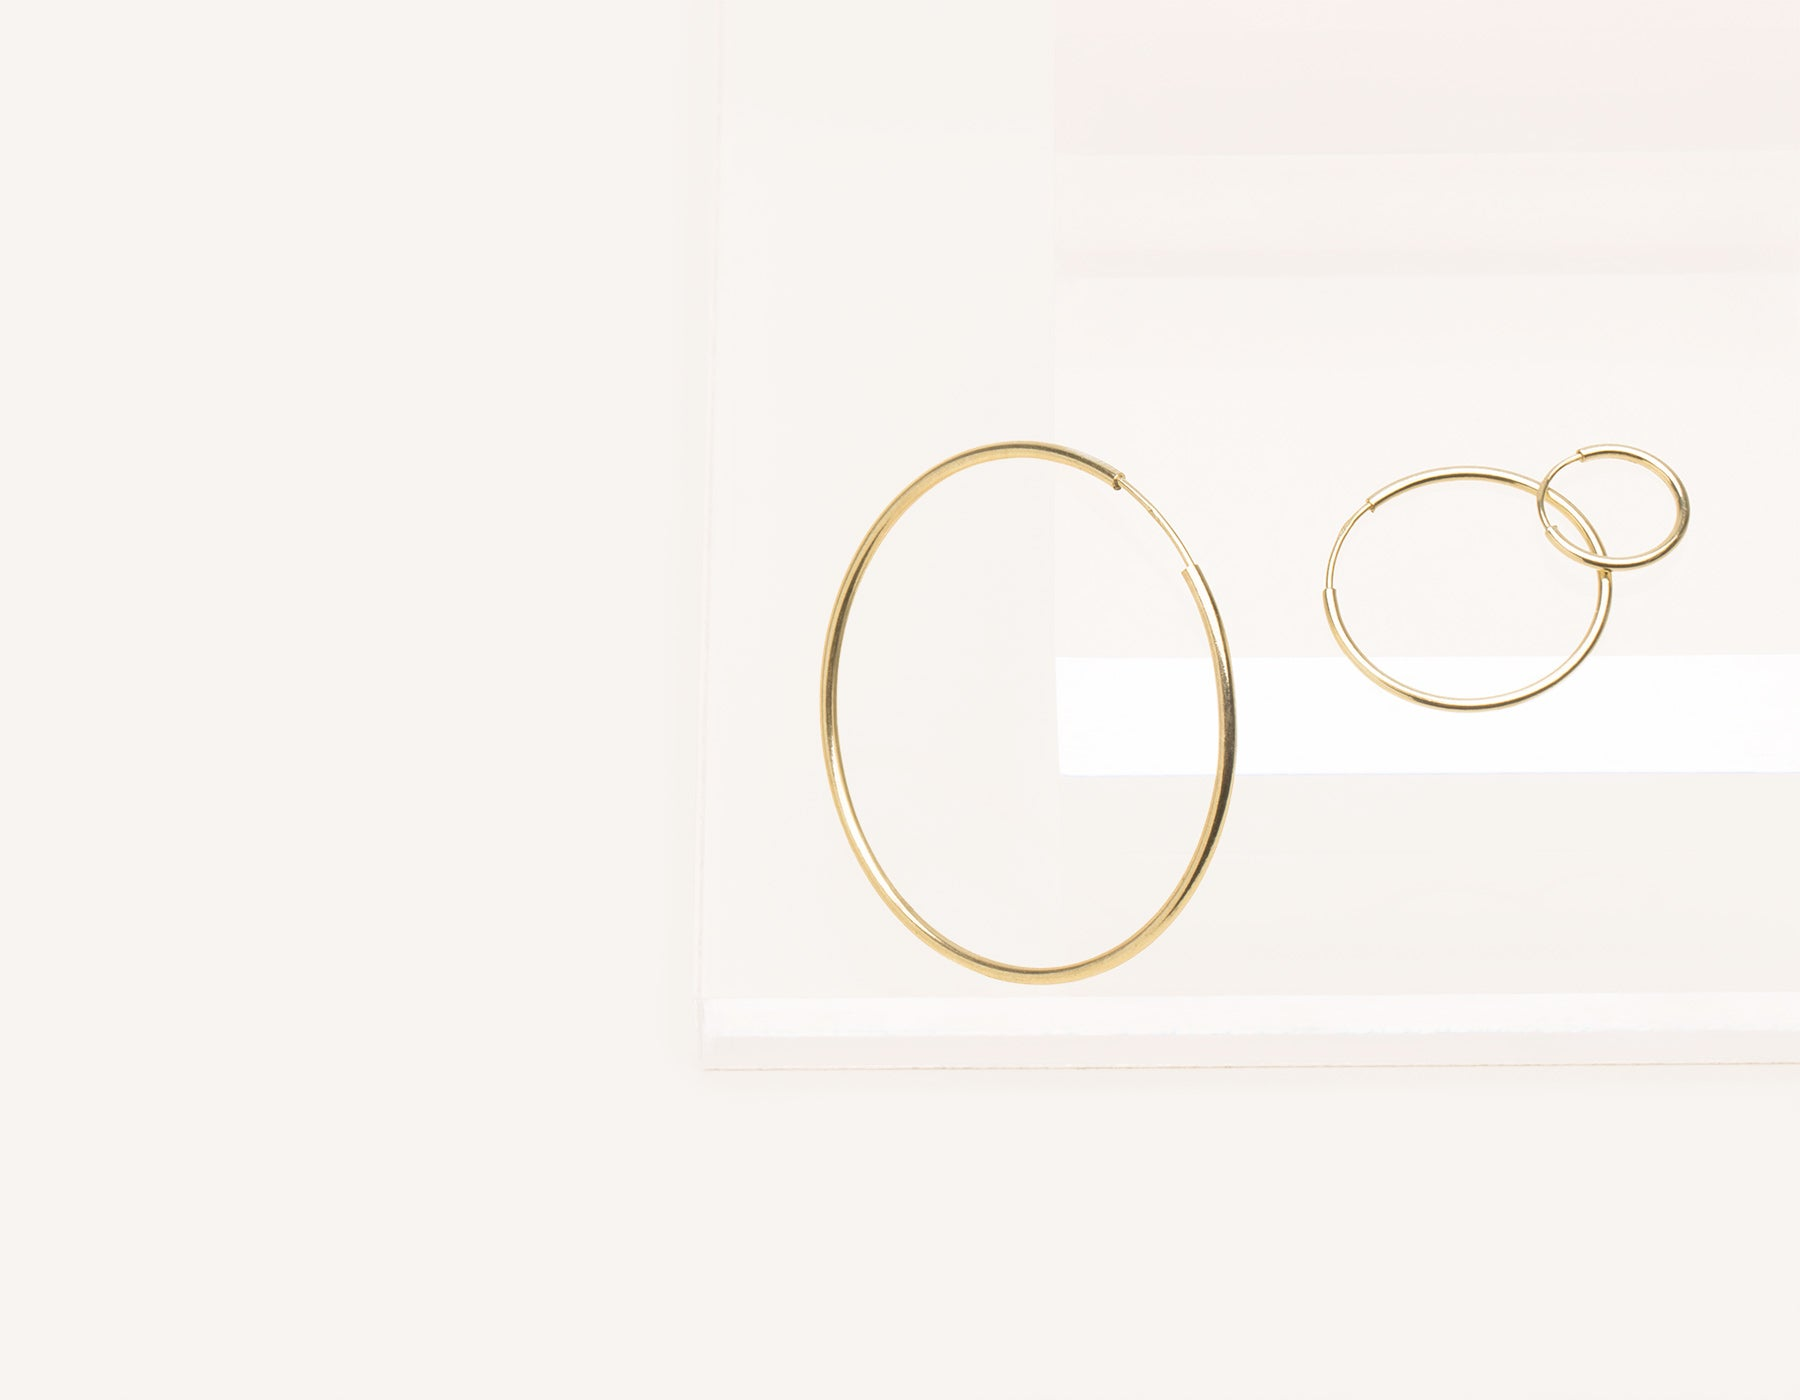 c0ff40d85 Simple classic thin Lightweight Hoops 14k solid gold Vrai and Oro  minimalist jewelry, 14K Yellow